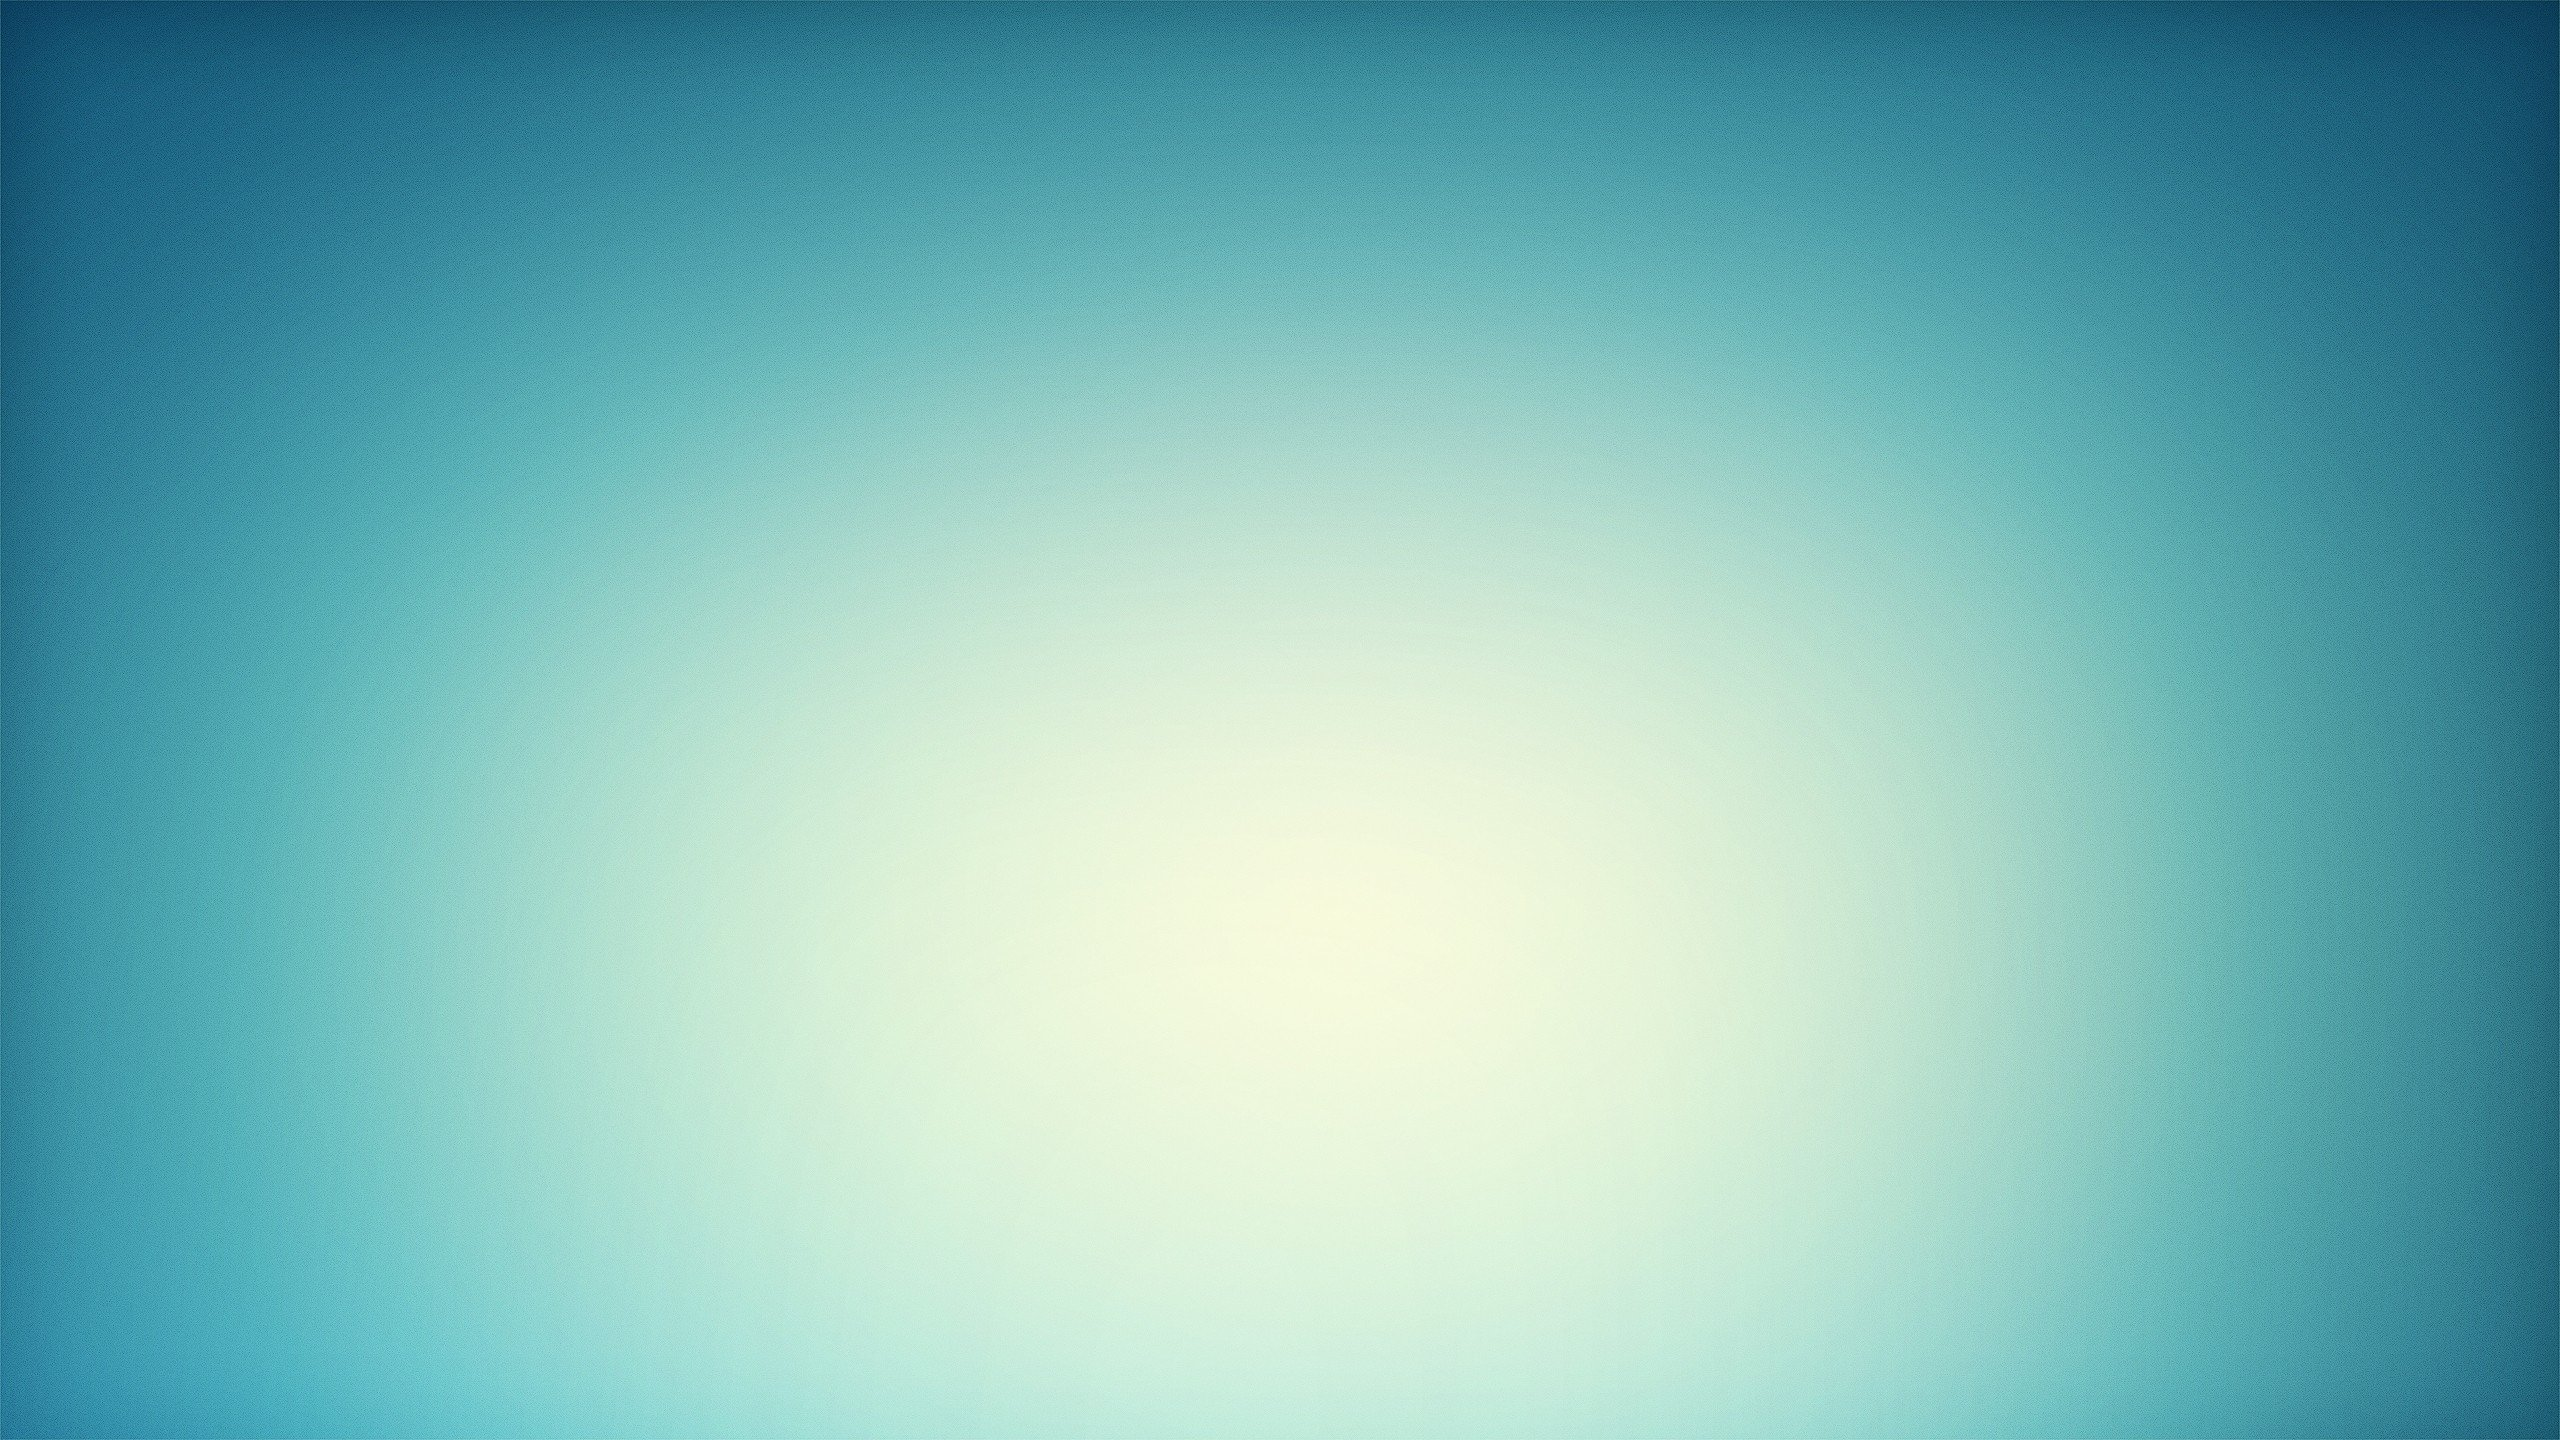 2560x1440 Clean Blue Background YouTube Channel Cover 2560x1440